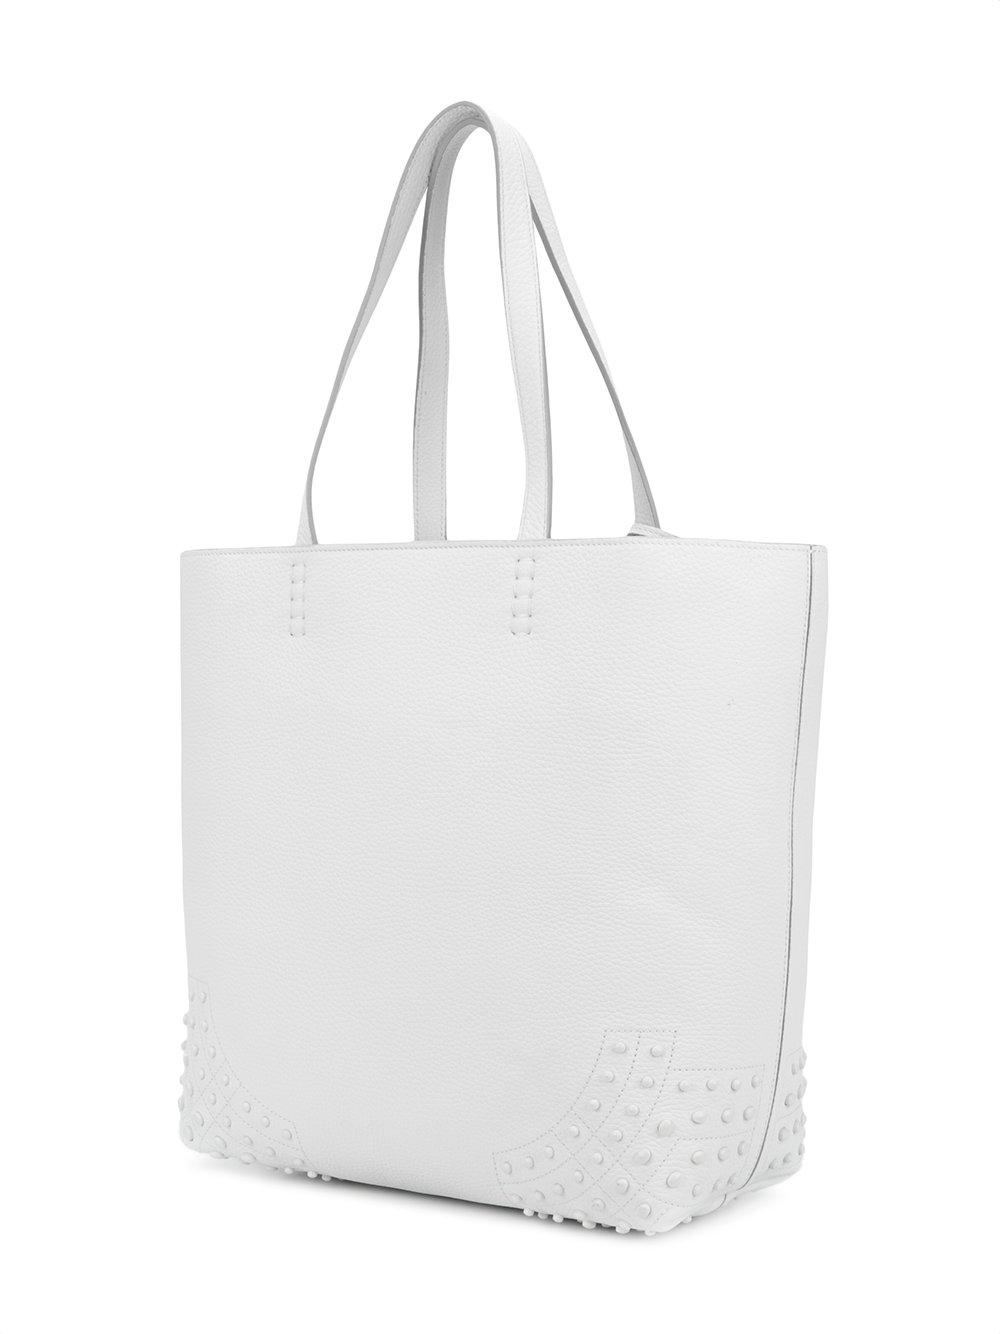 Tod's Leather Wave Medium Tote Bag in White